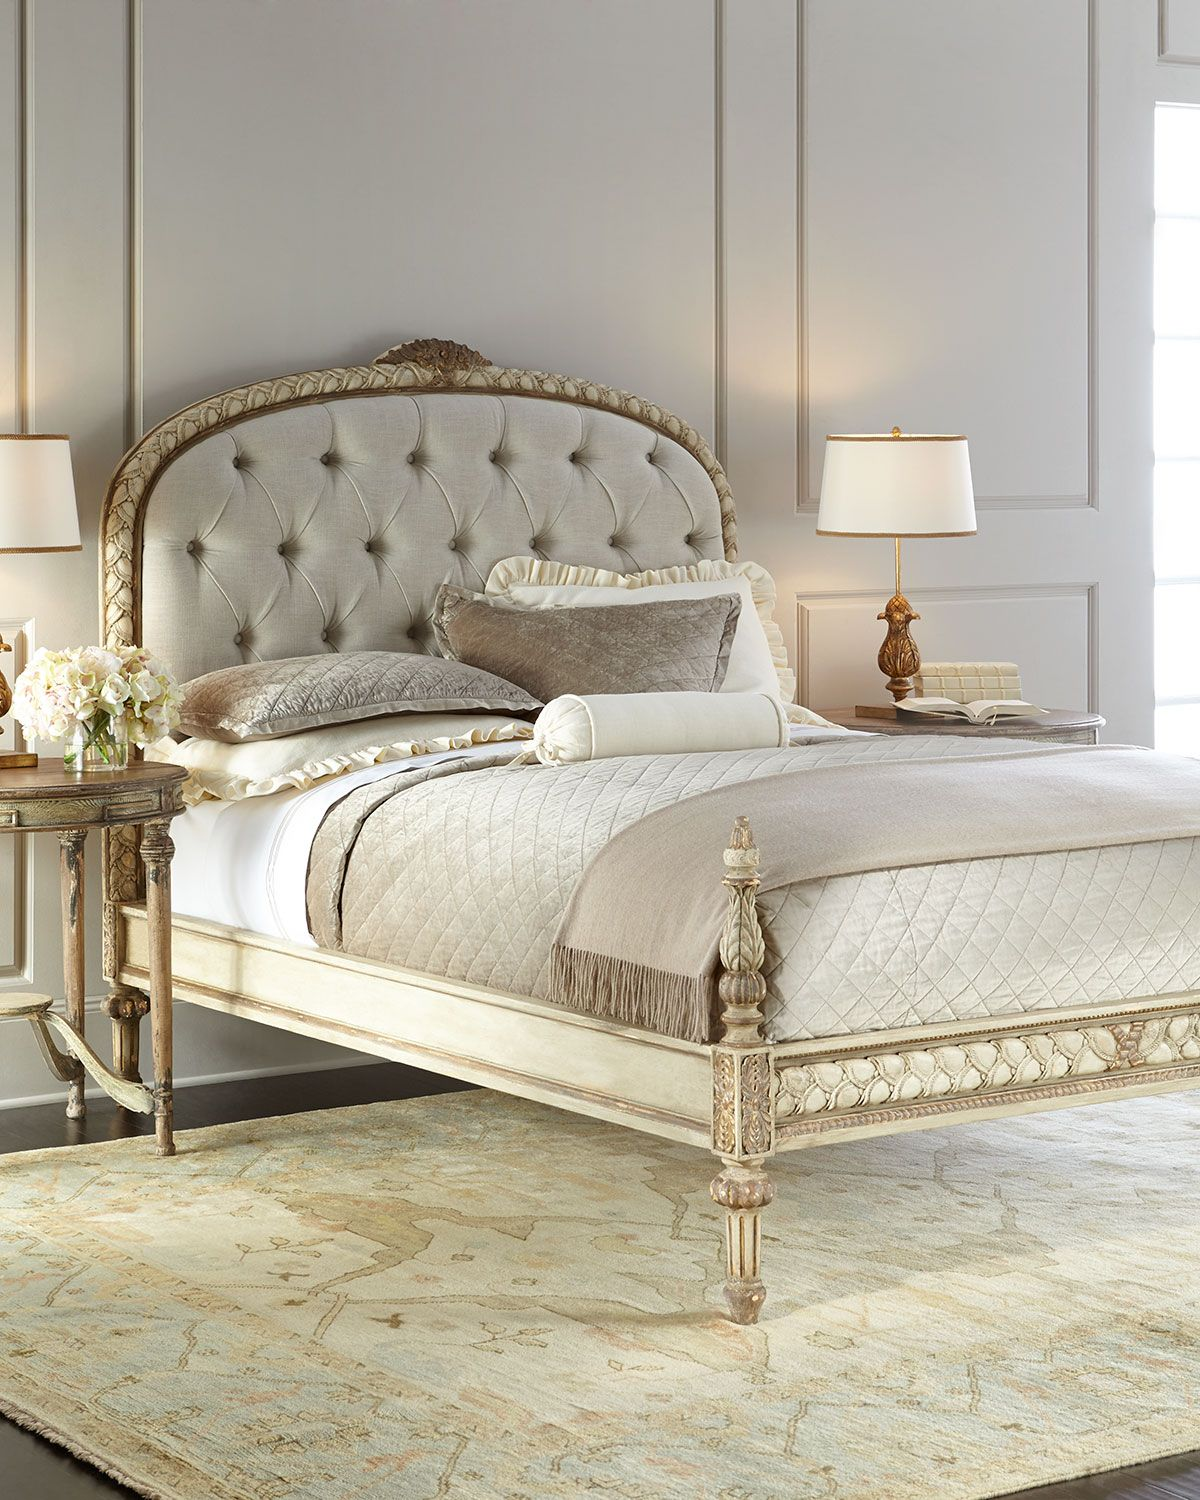 neiman marcus bedroom furniture. Beatrice Tufted Queen Bed By John-Richard Collection At Neiman Marcus. Marcus Bedroom Furniture I